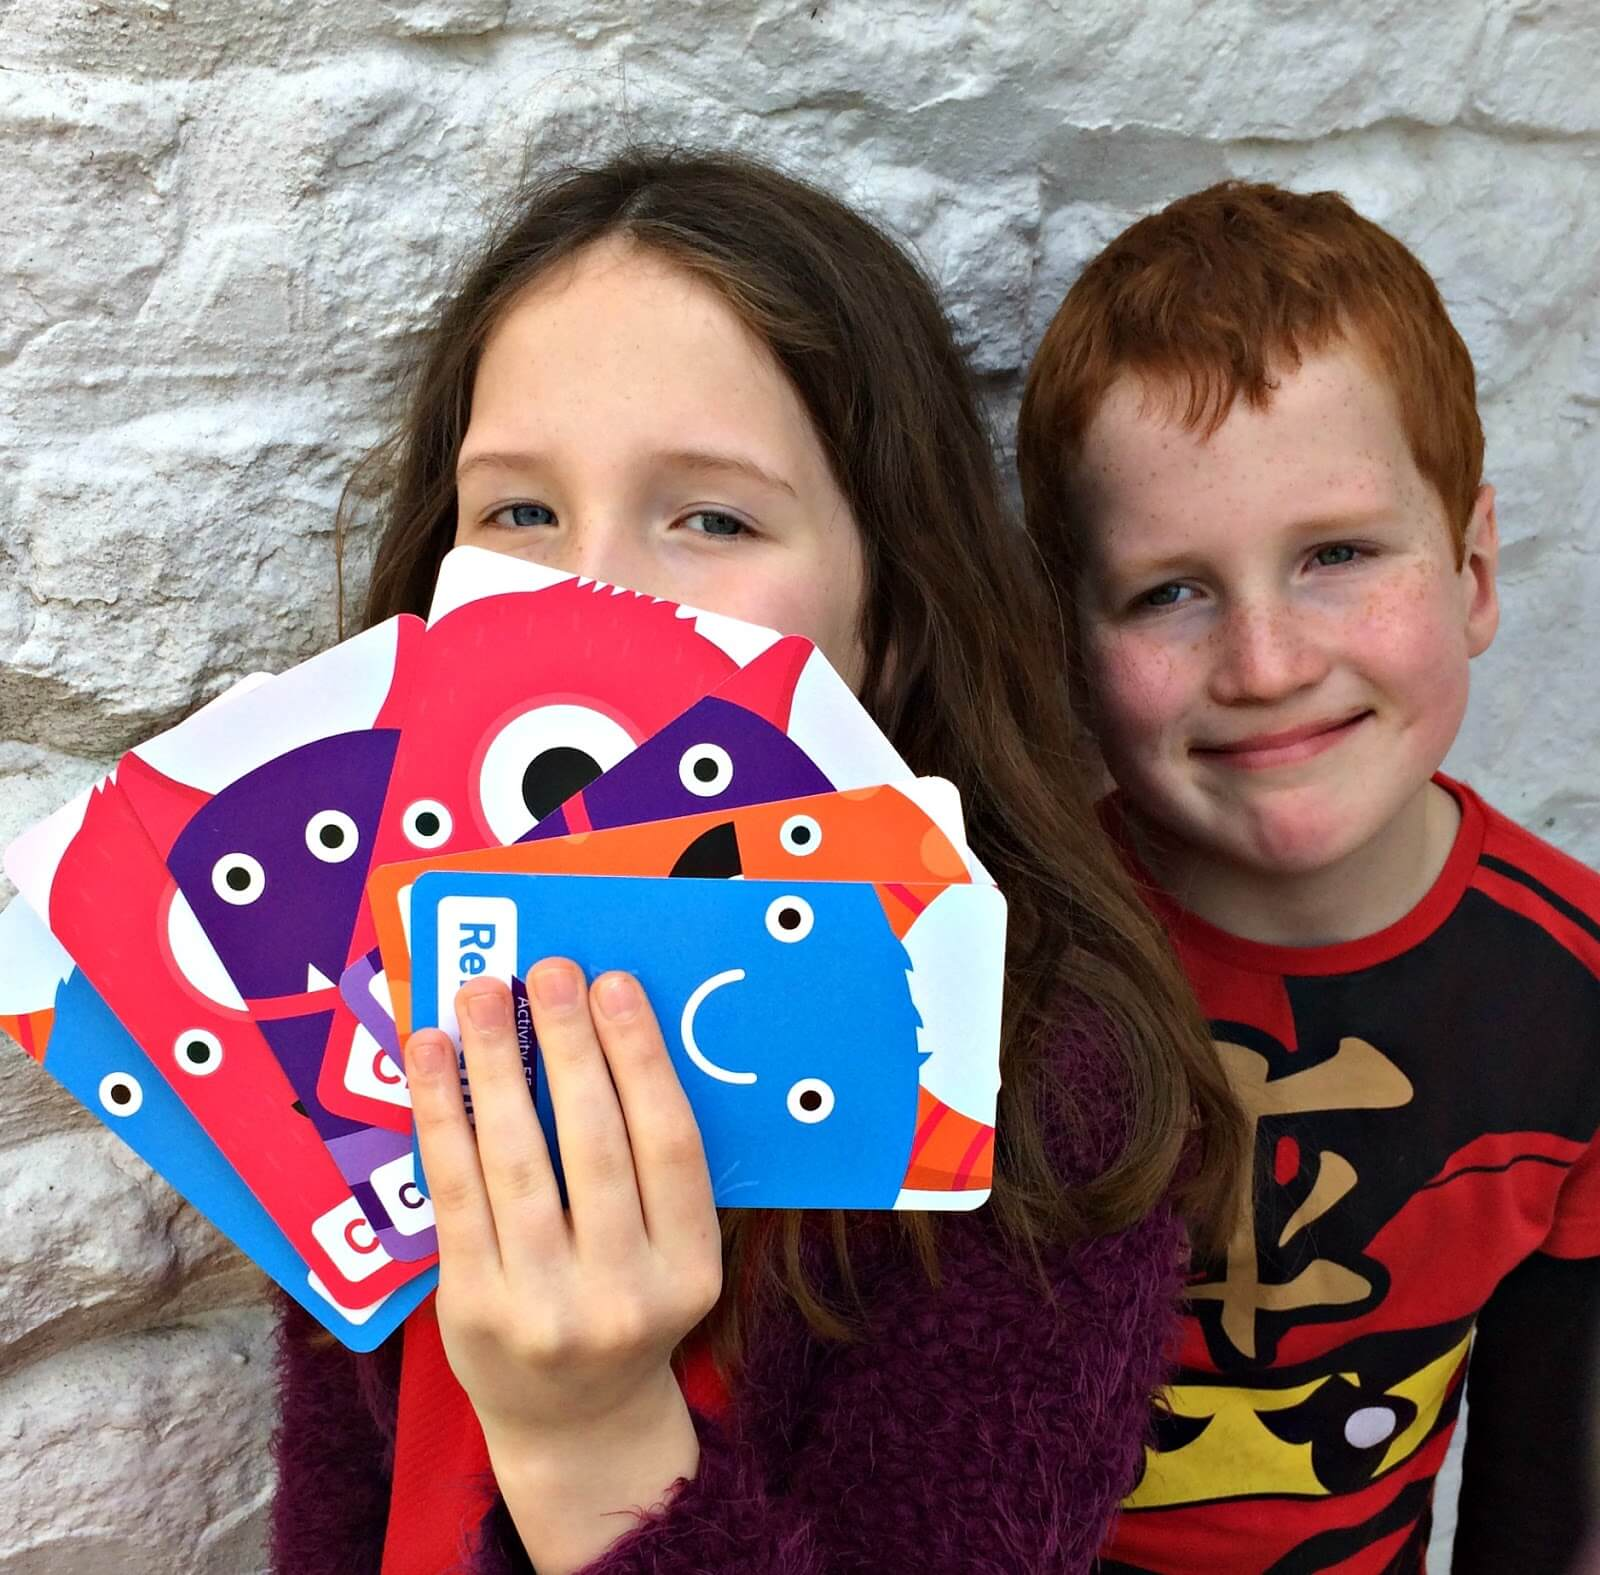 mindfulness training for kids - Caitlin & Ieuan with the Mindful Monster cards